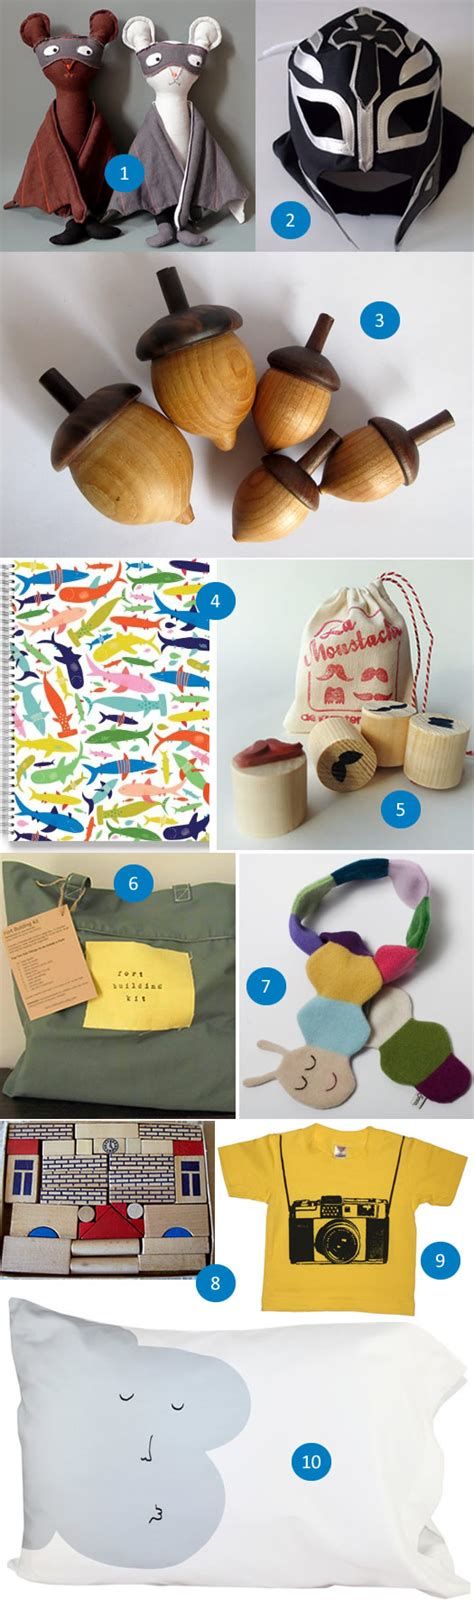 Handmade Gift Ideas For Boys - handmade gifts for boys 2012